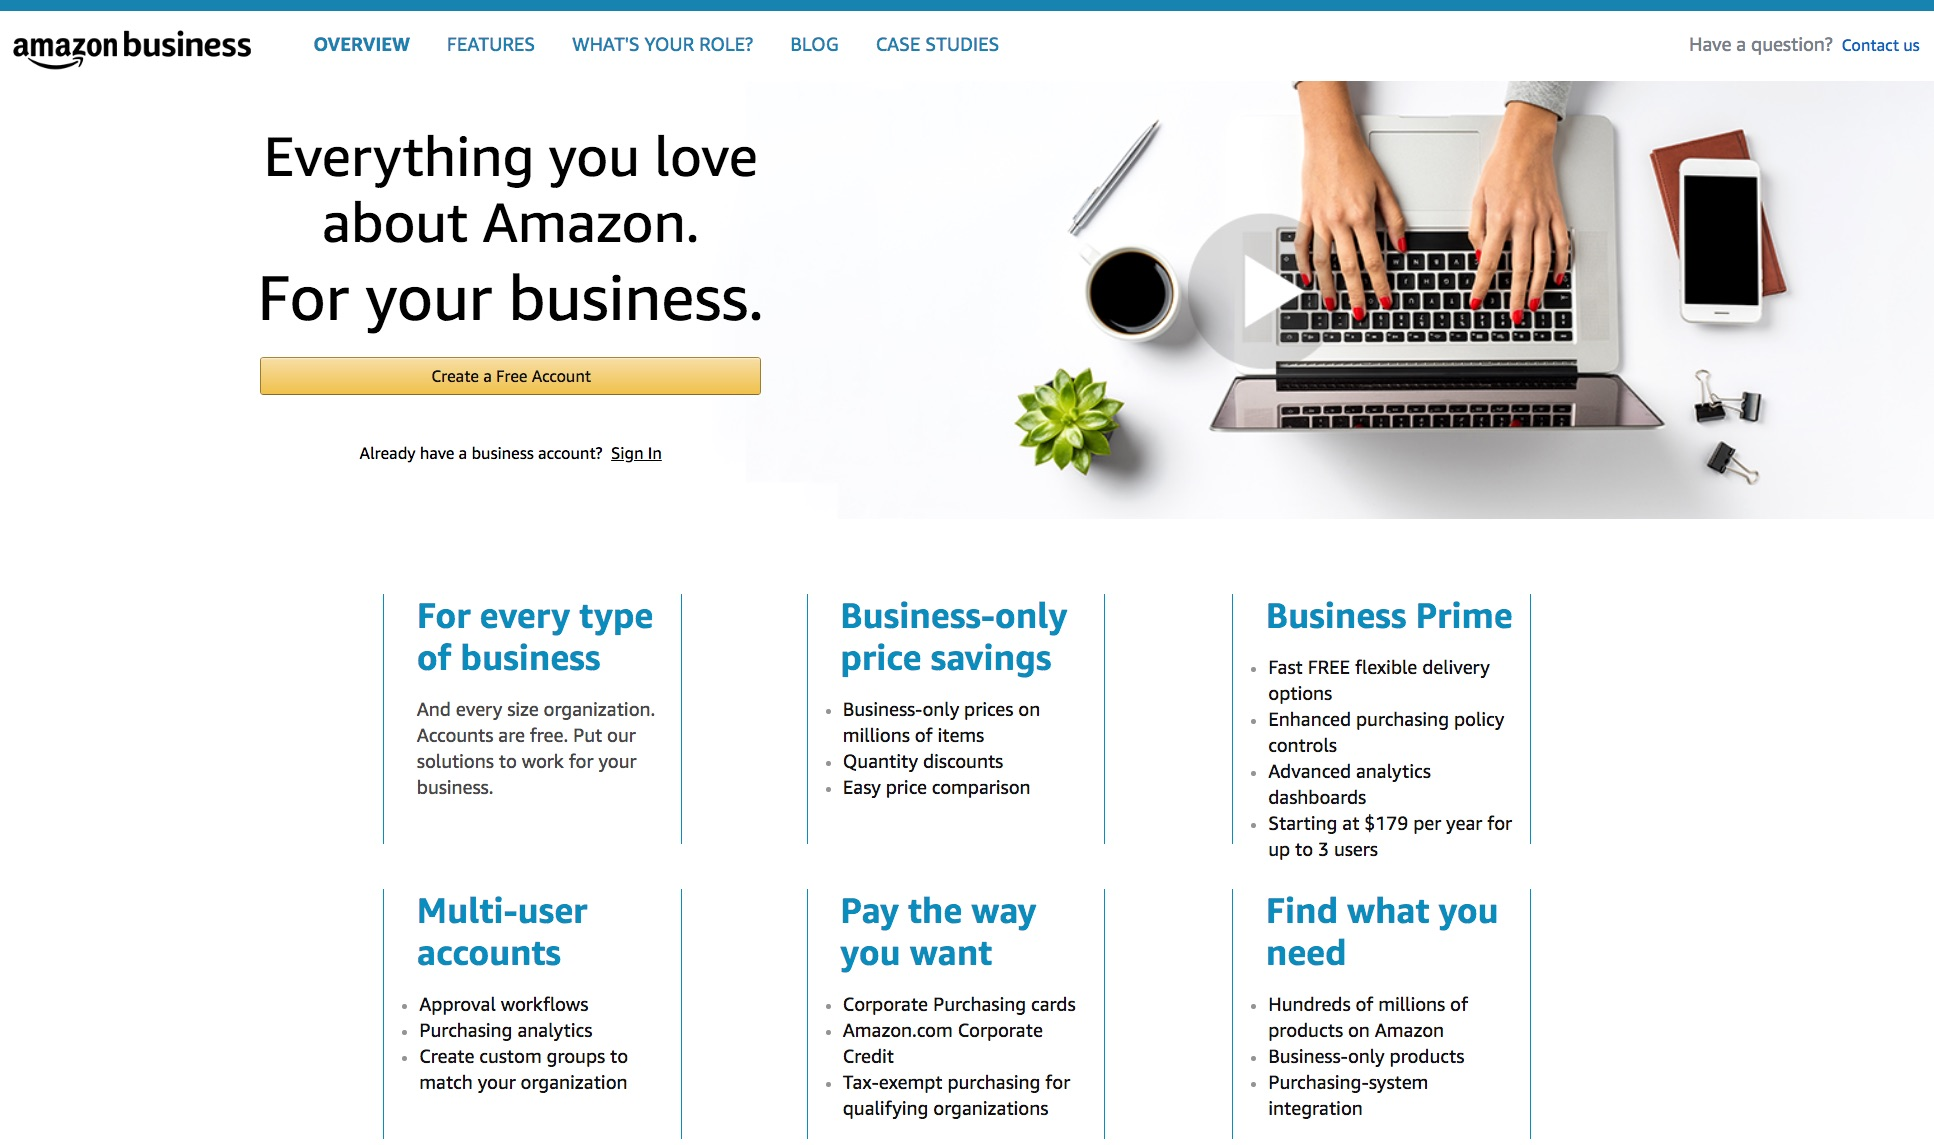 Amazon Business Homepage